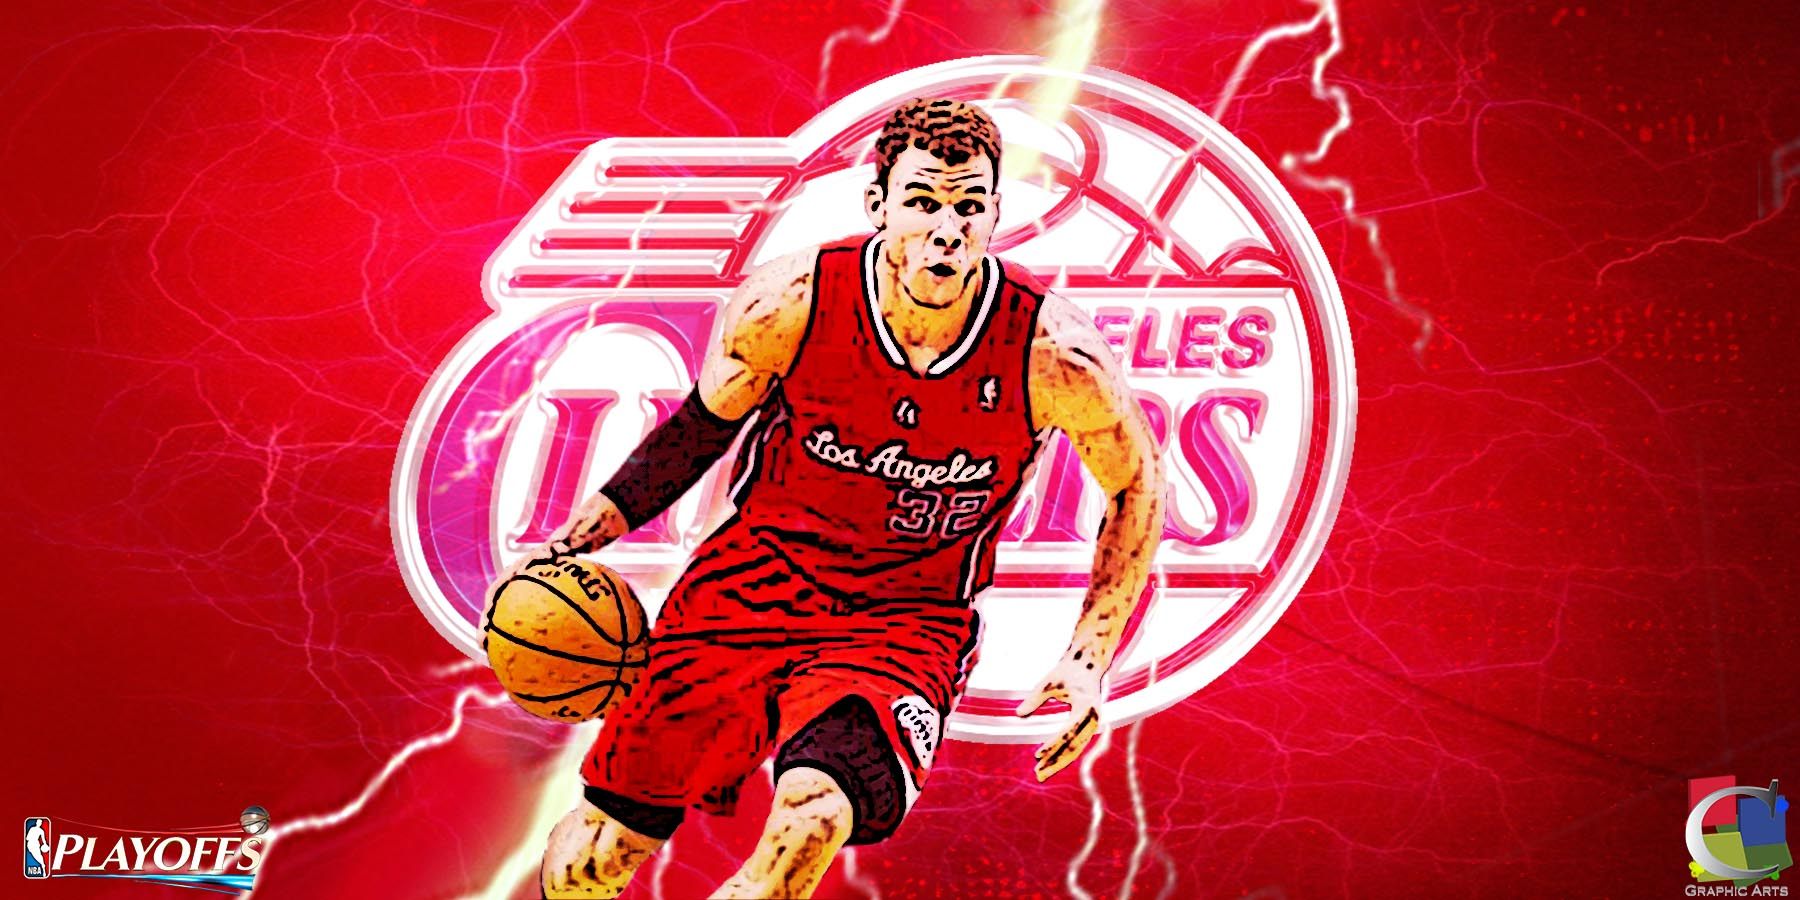 blake griffin wallpapercgraphicarts on deviantart